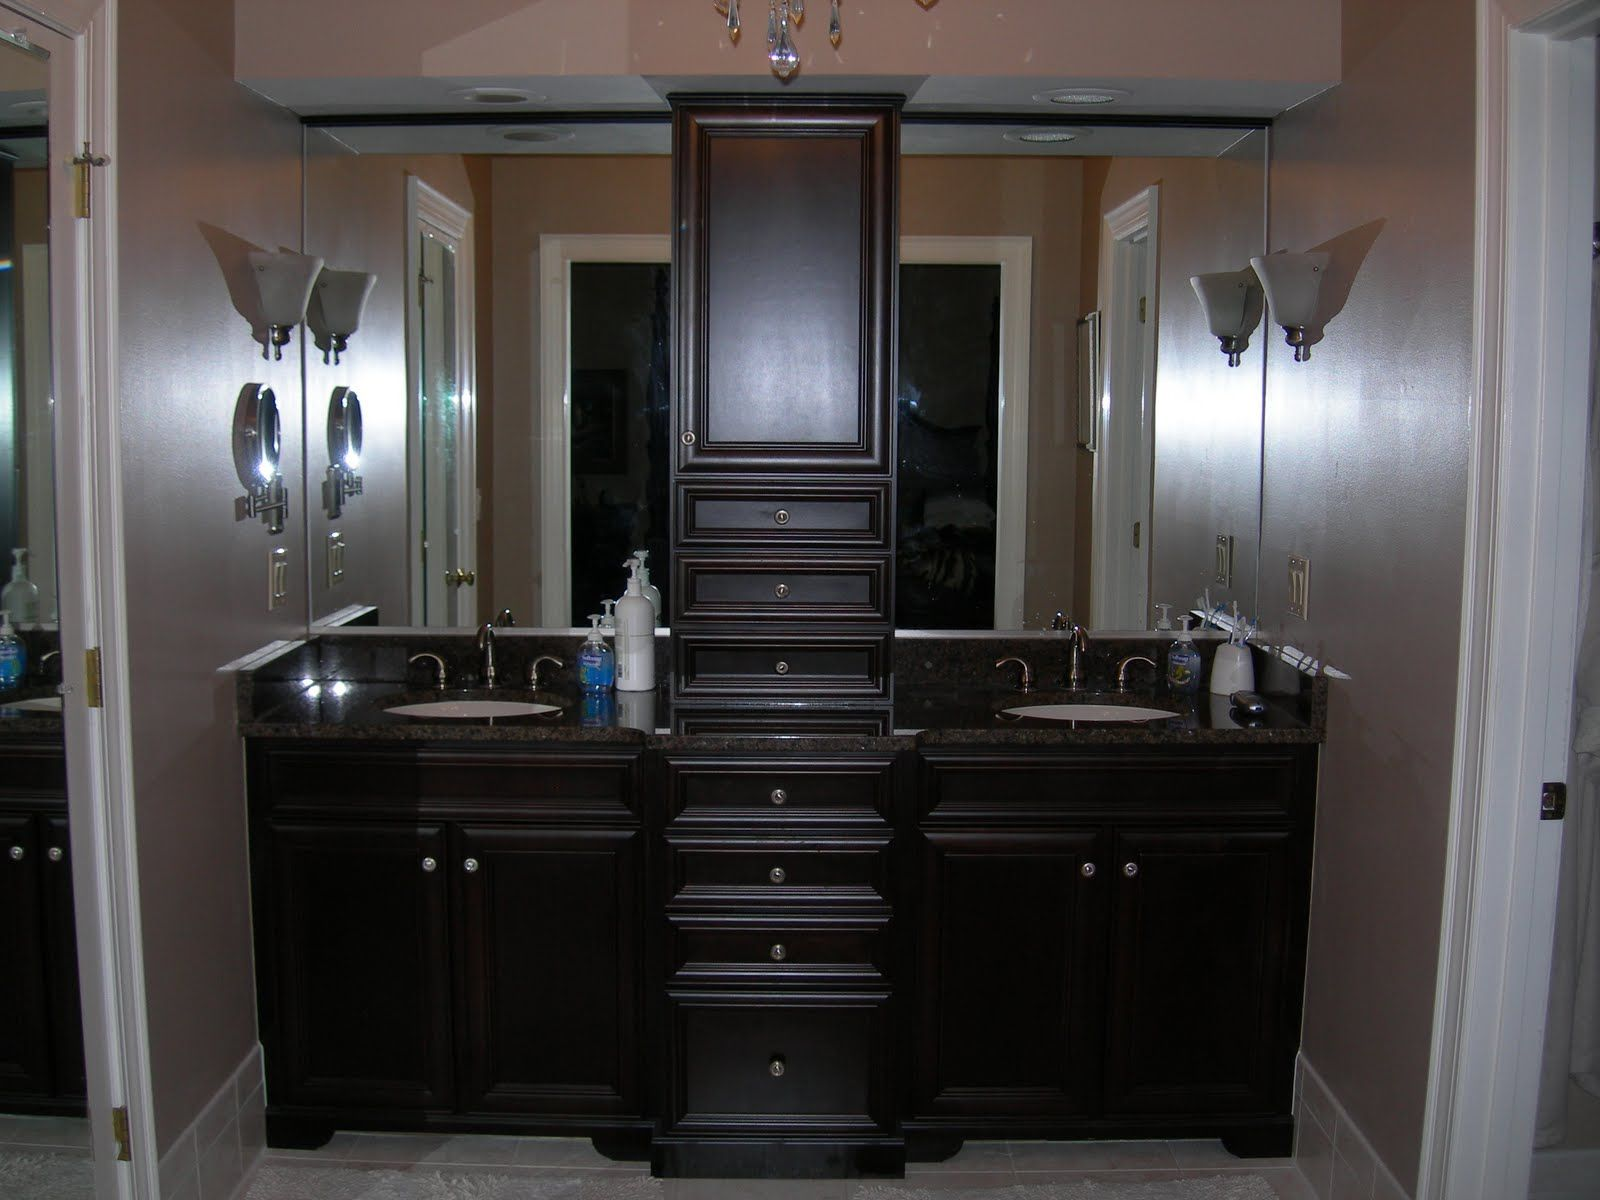 Delightful Luxury Inexpensive Bathroom Remodel Tips With Trendy Brown Granite Vanity  Top Large Brown Cabinet Knobs Attached